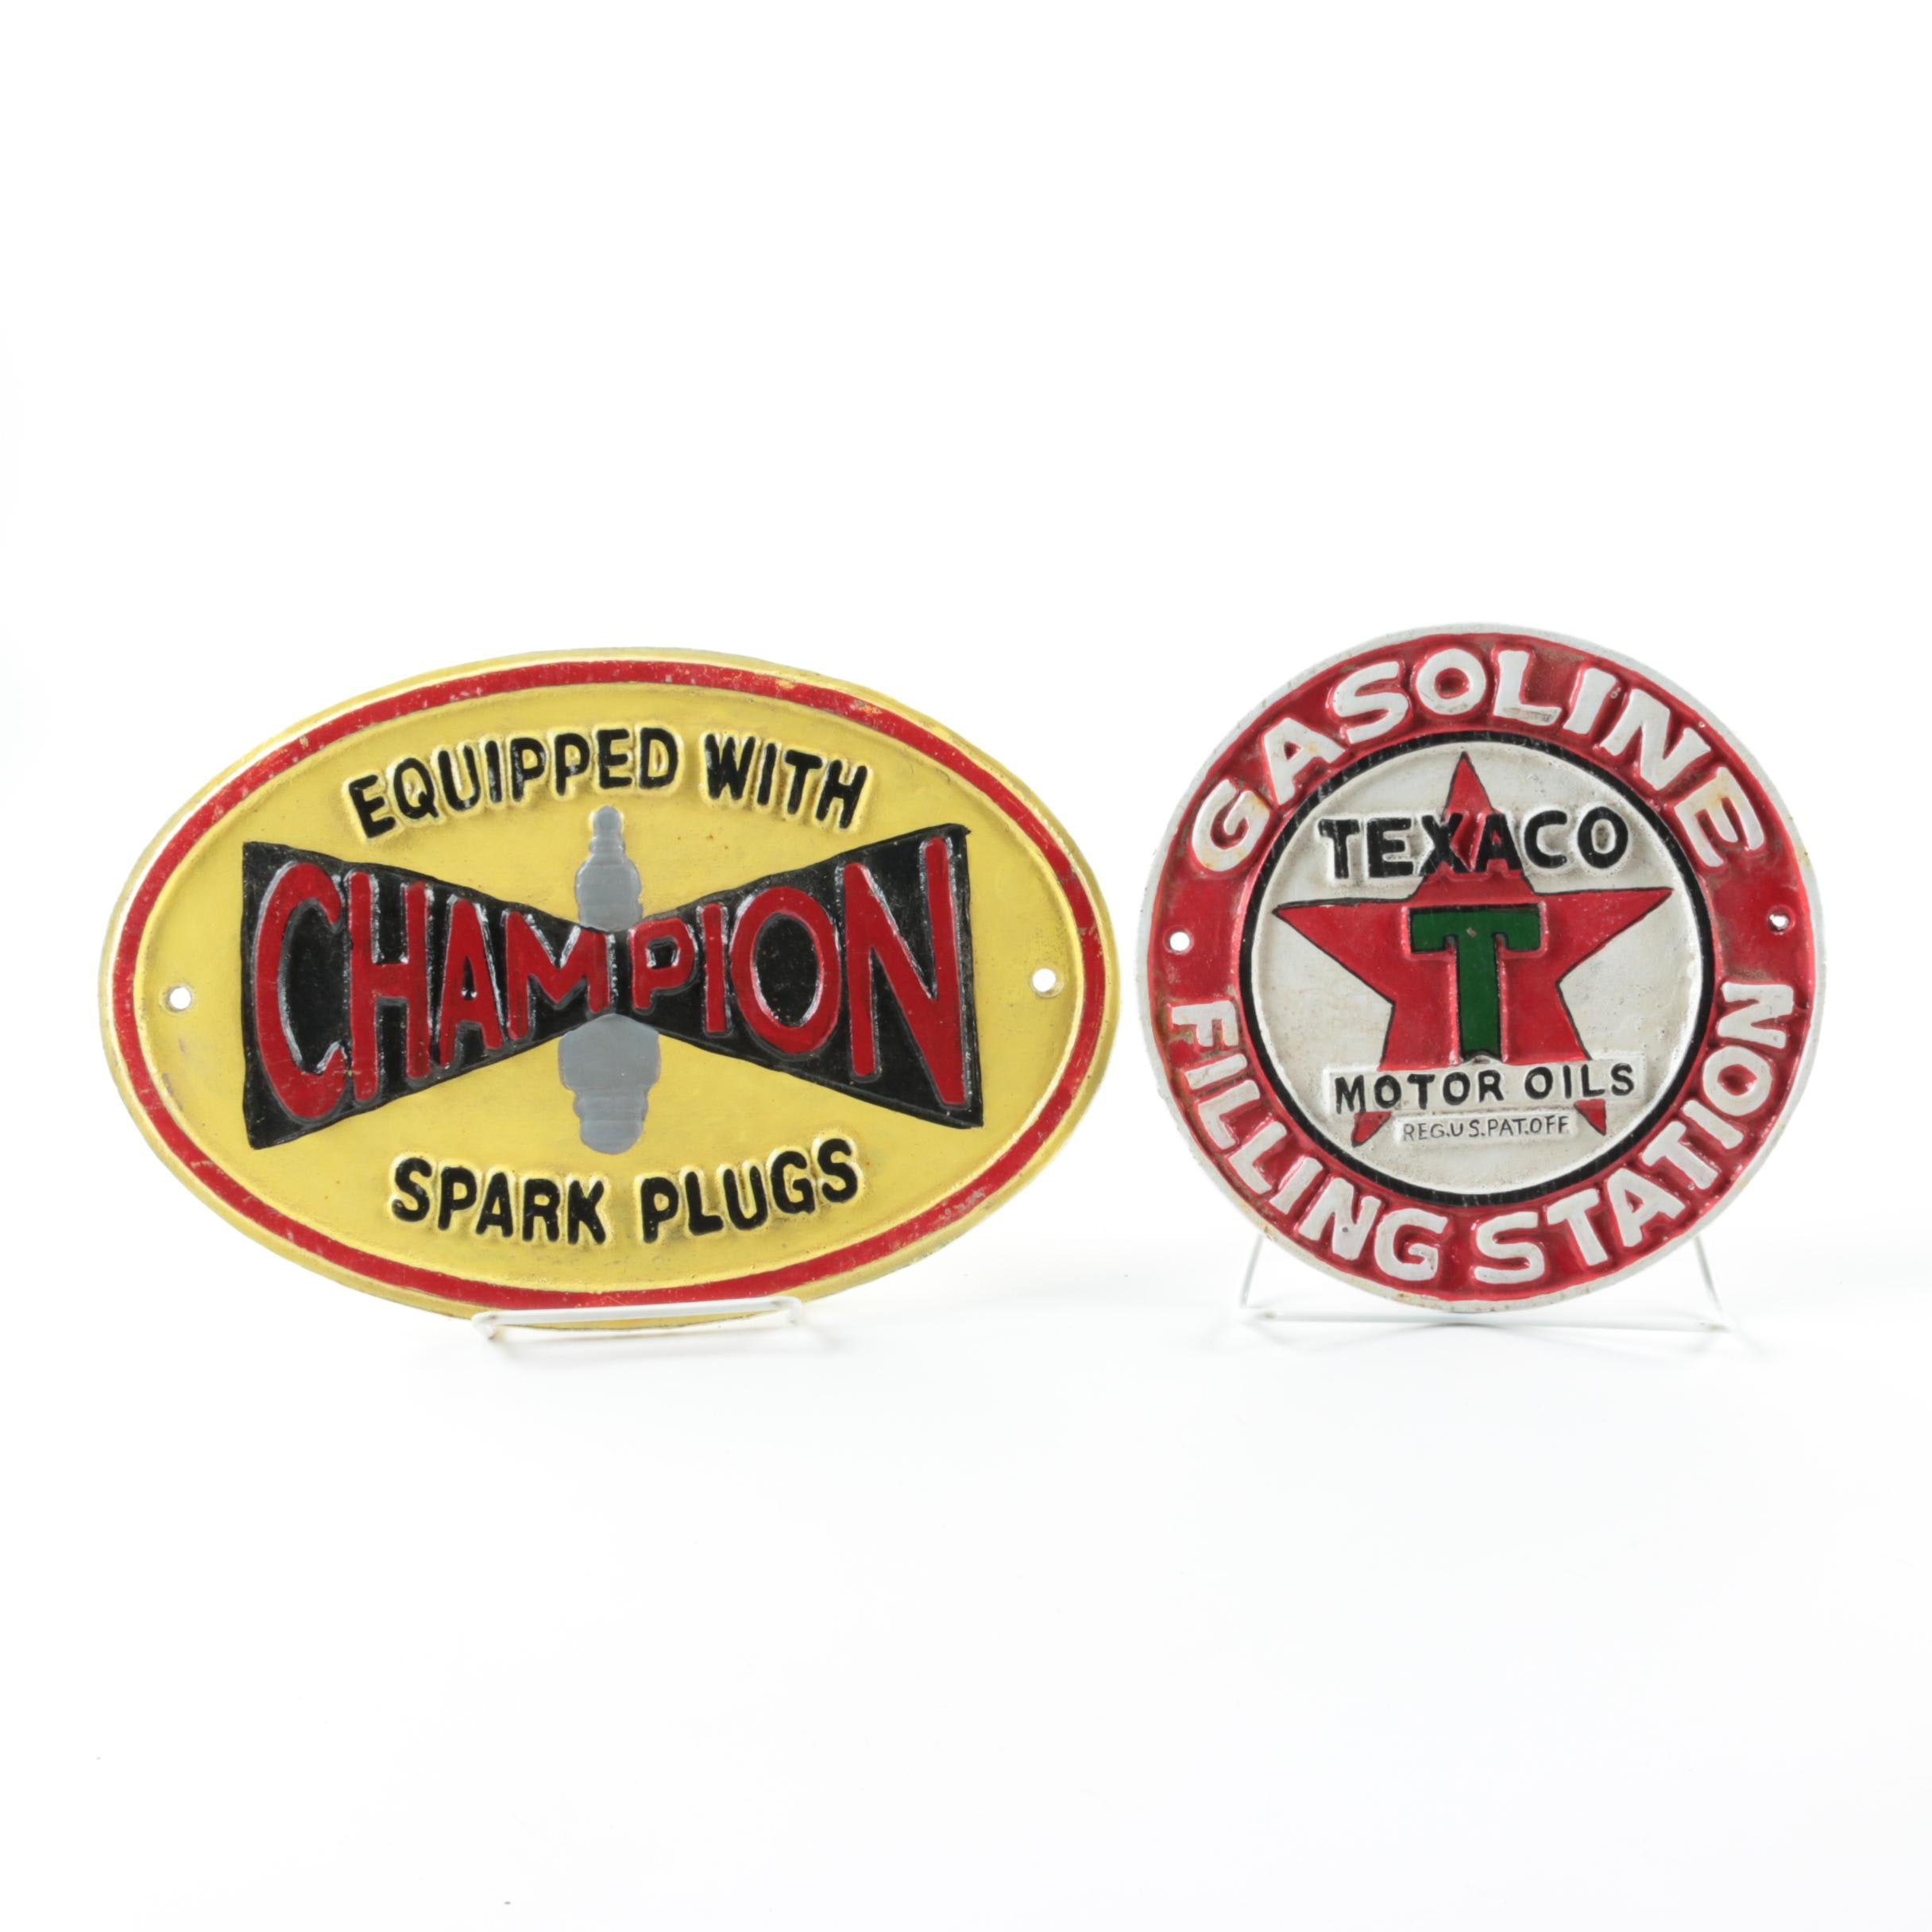 Iron Advertising Signs for Champion Spark Plugs and Texaco Oil